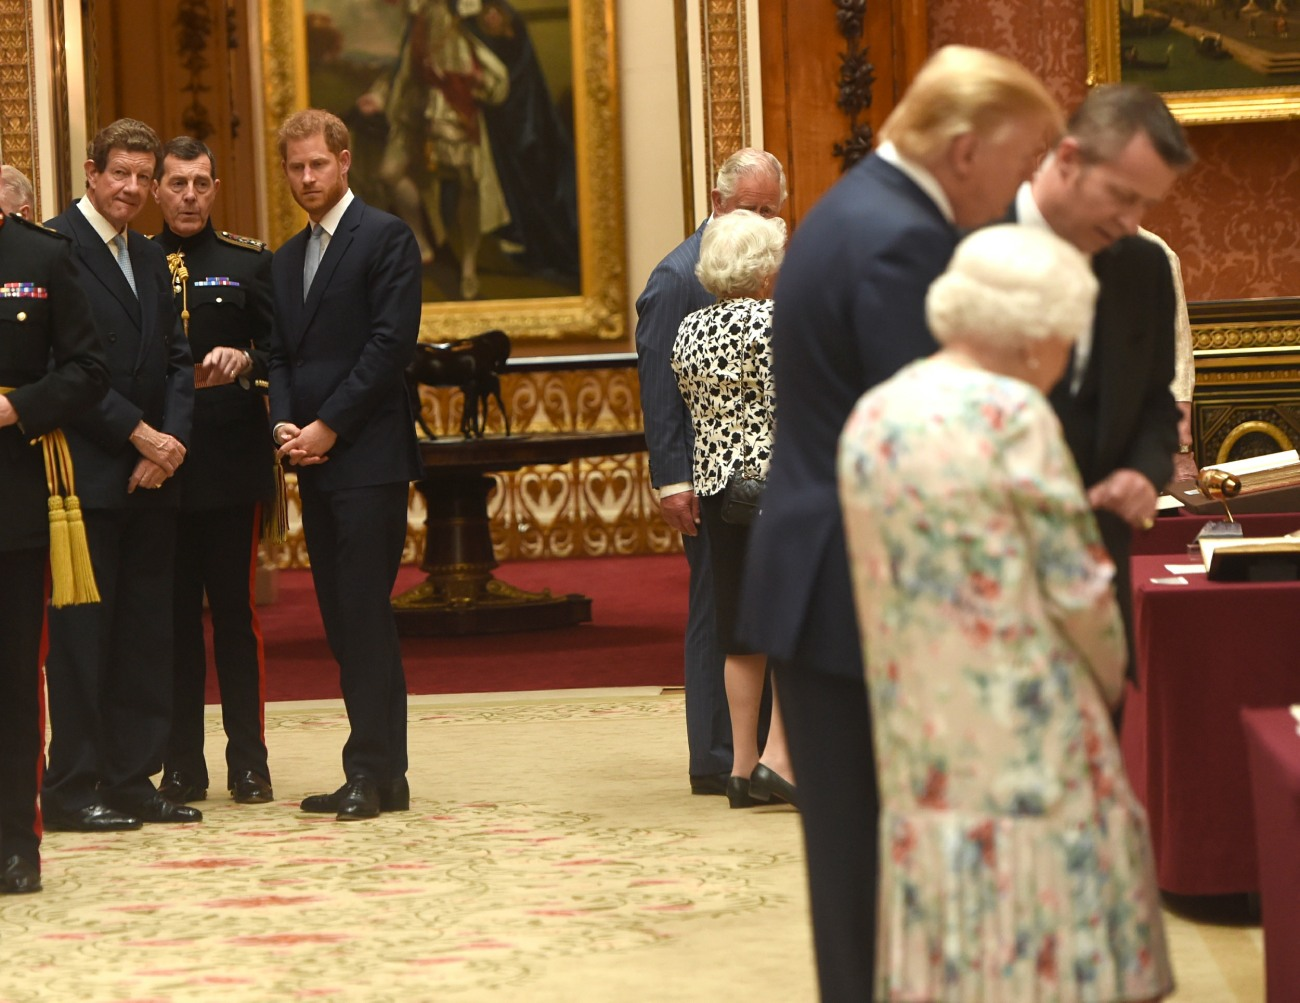 Prince Harry views displays of US items from the Royal Collection at Buckingham Palace in London.